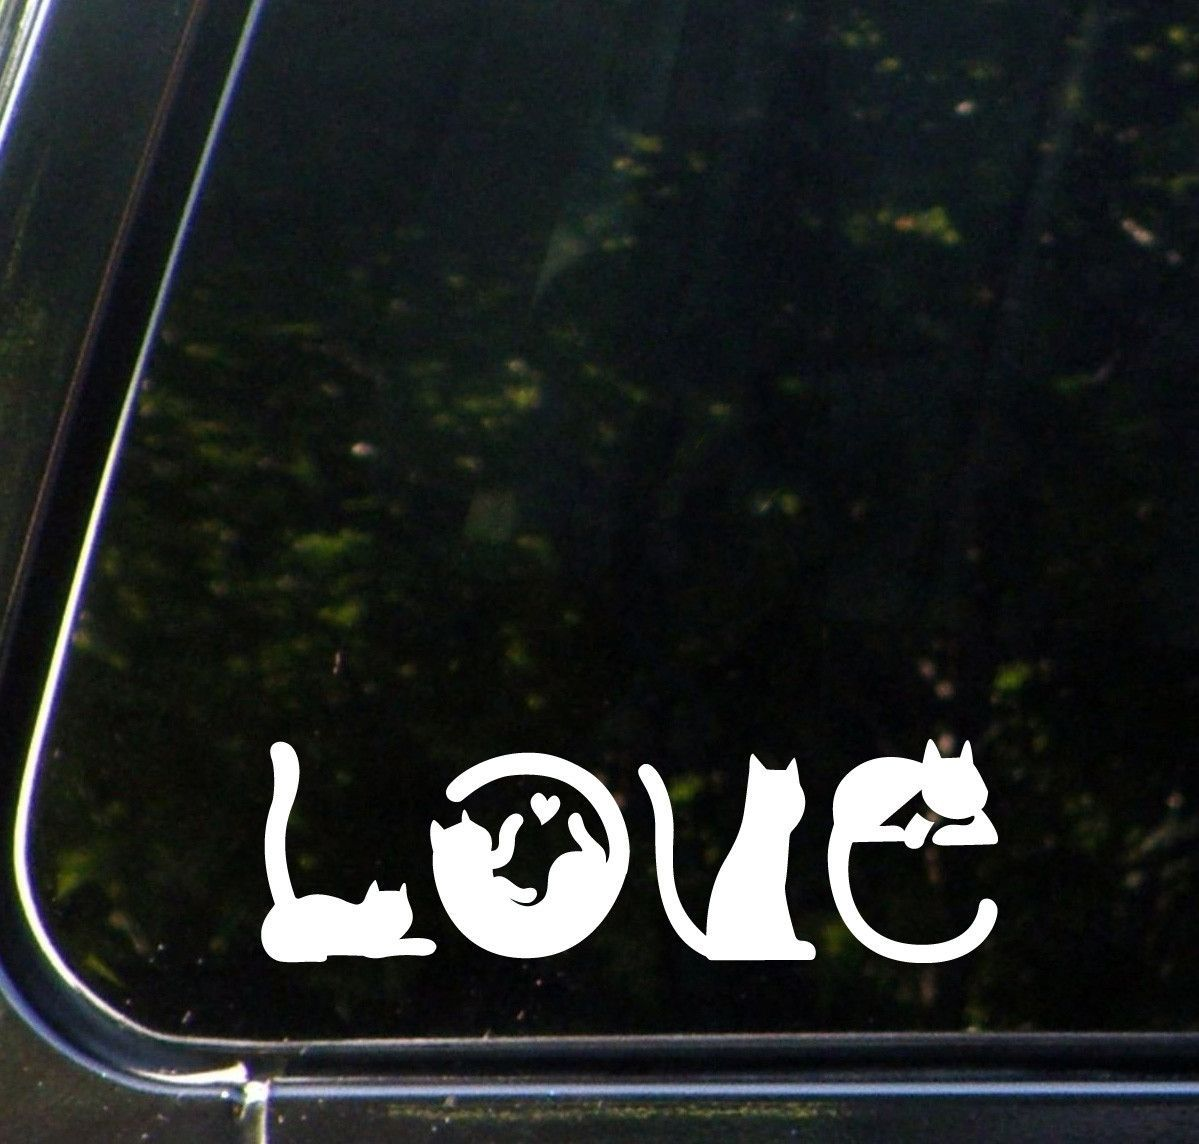 Car sticker design pinterest - Sticker Yydc Vinyl Stickers Sticker Design Window Stickers Bumper Stickers Vinyl Embroidary Spell Love Cats Spell Yadda Yadda Design